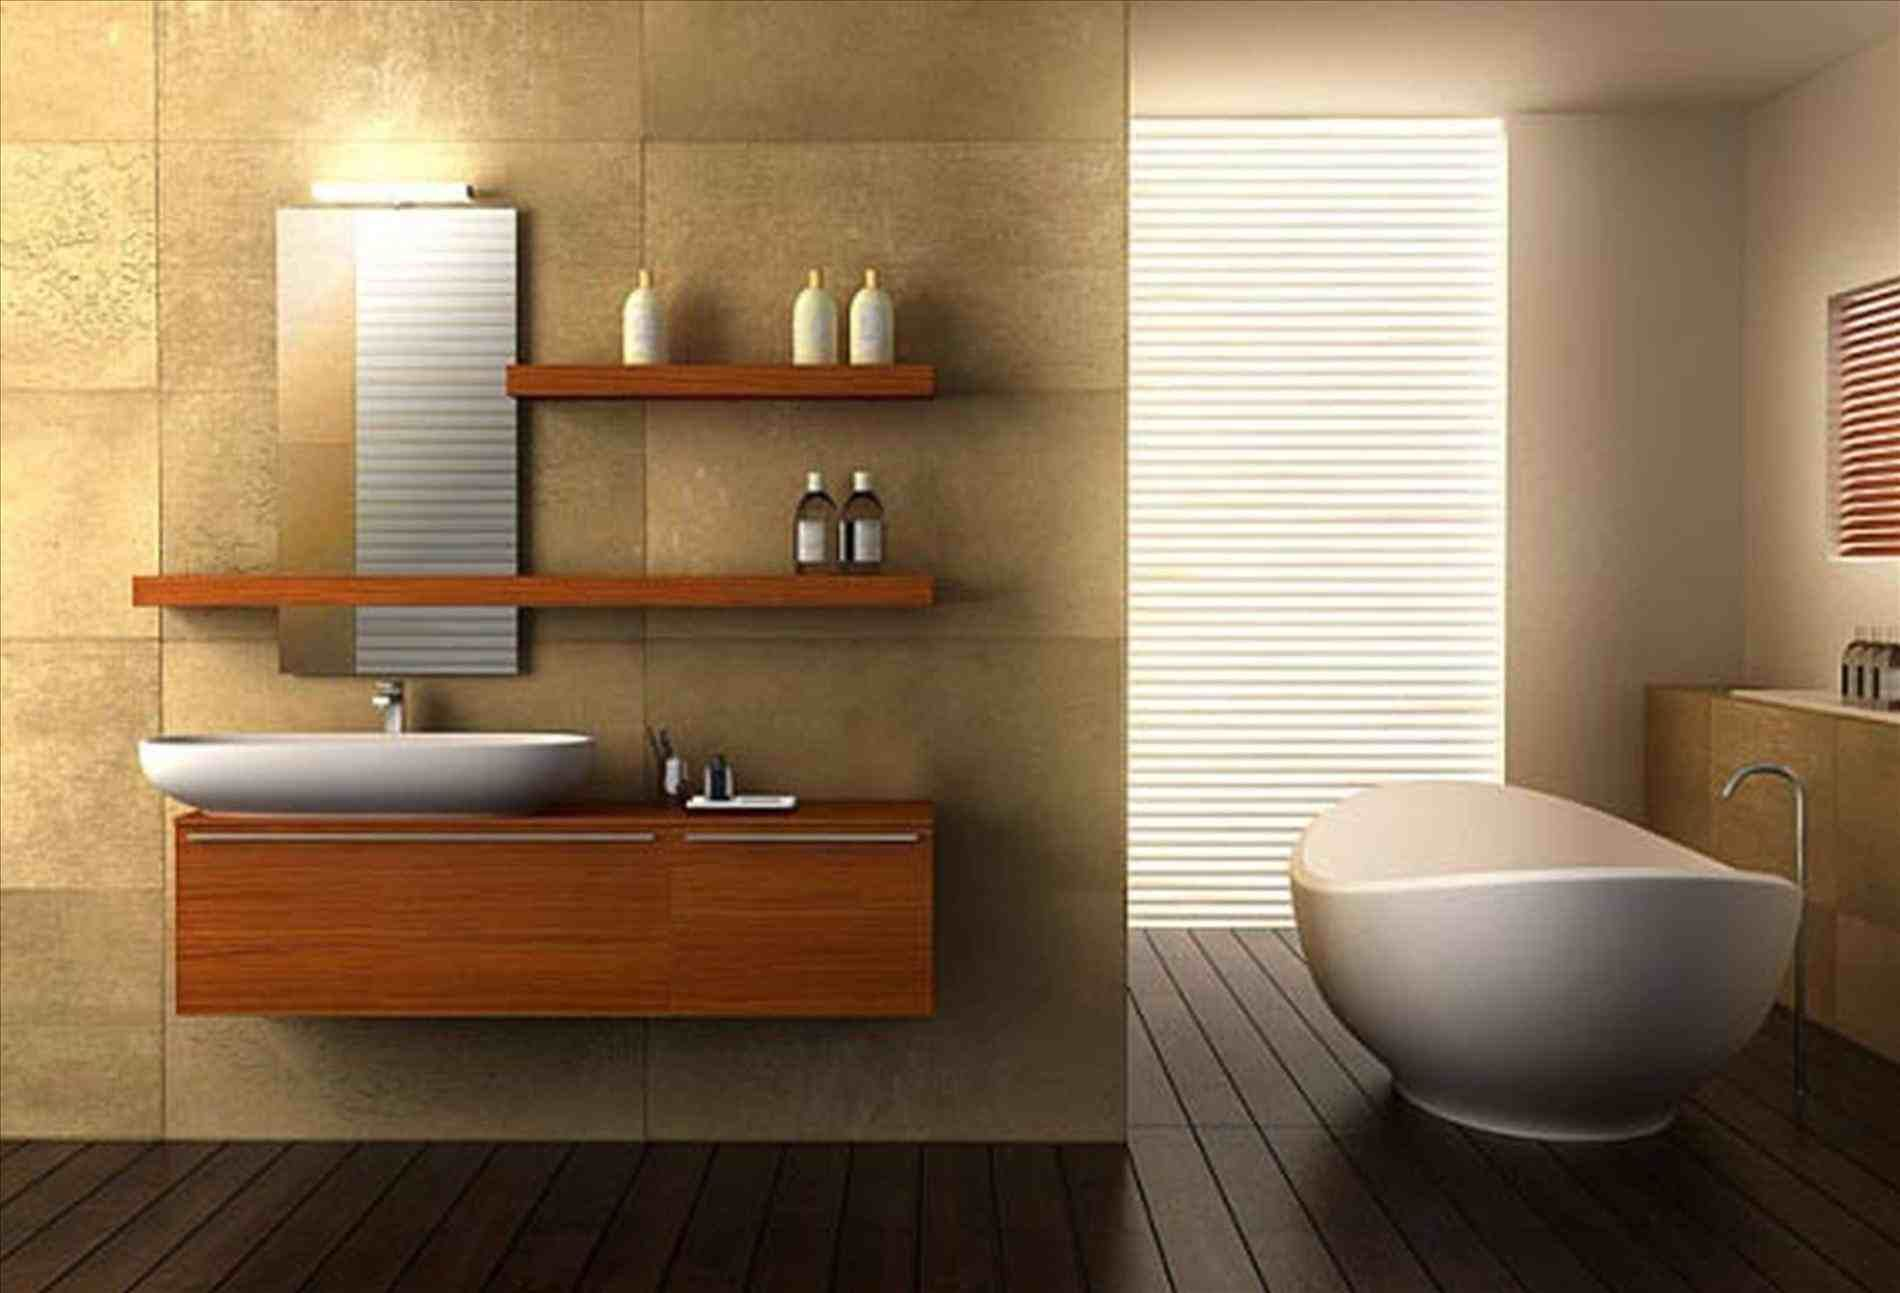 This kerala home bathroom tile designs - gallery of simple ...